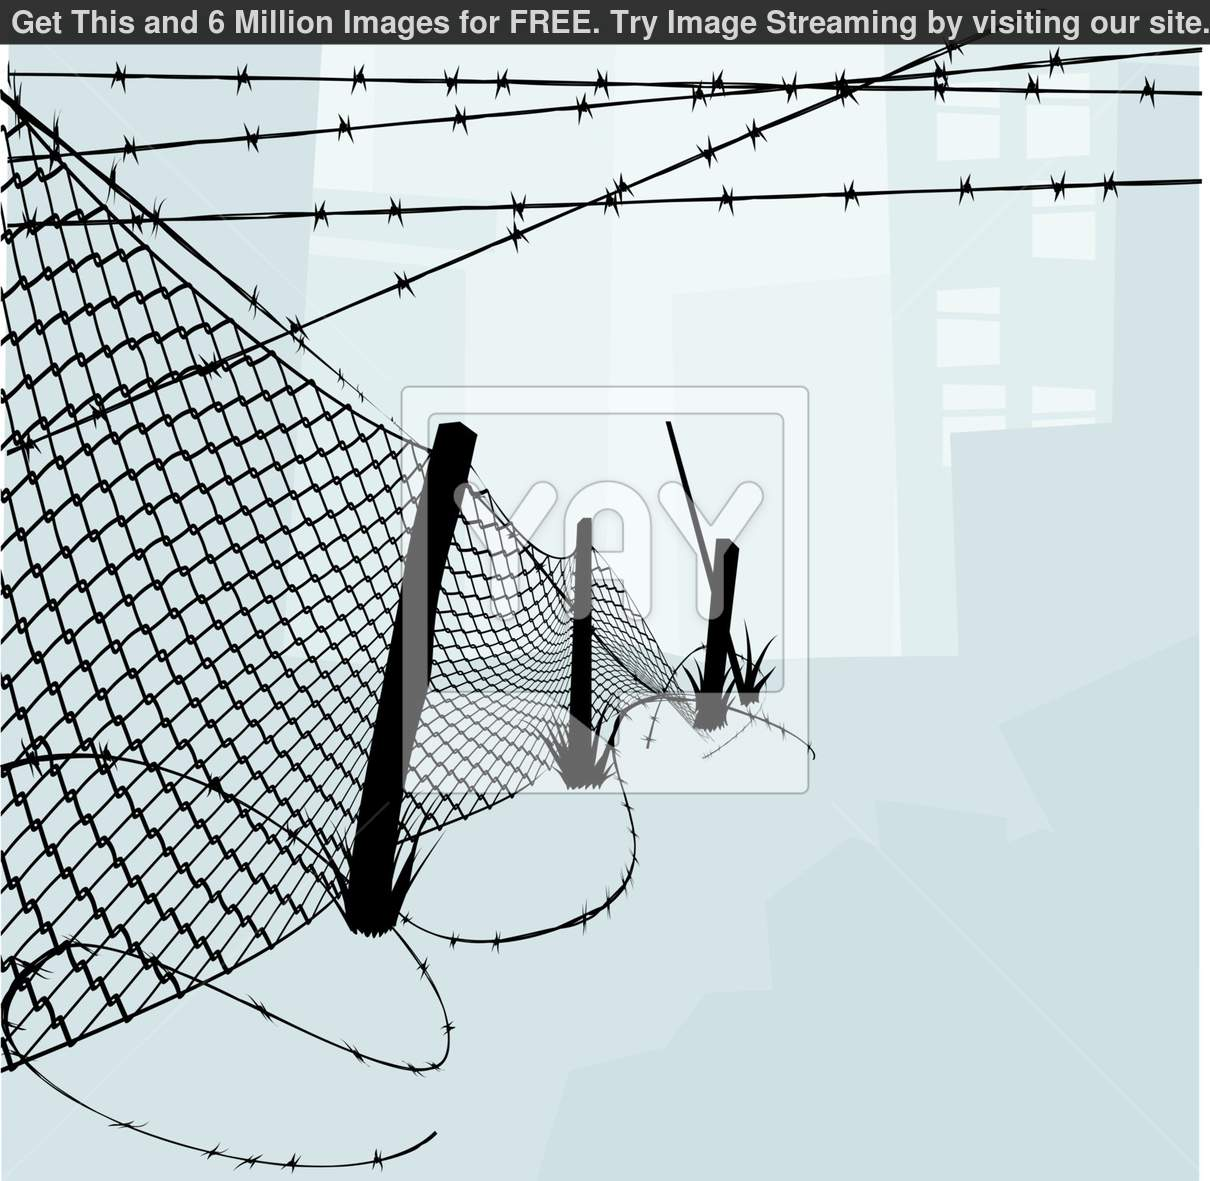 Wire Clip Art : Barbed wire fence clipart suggest